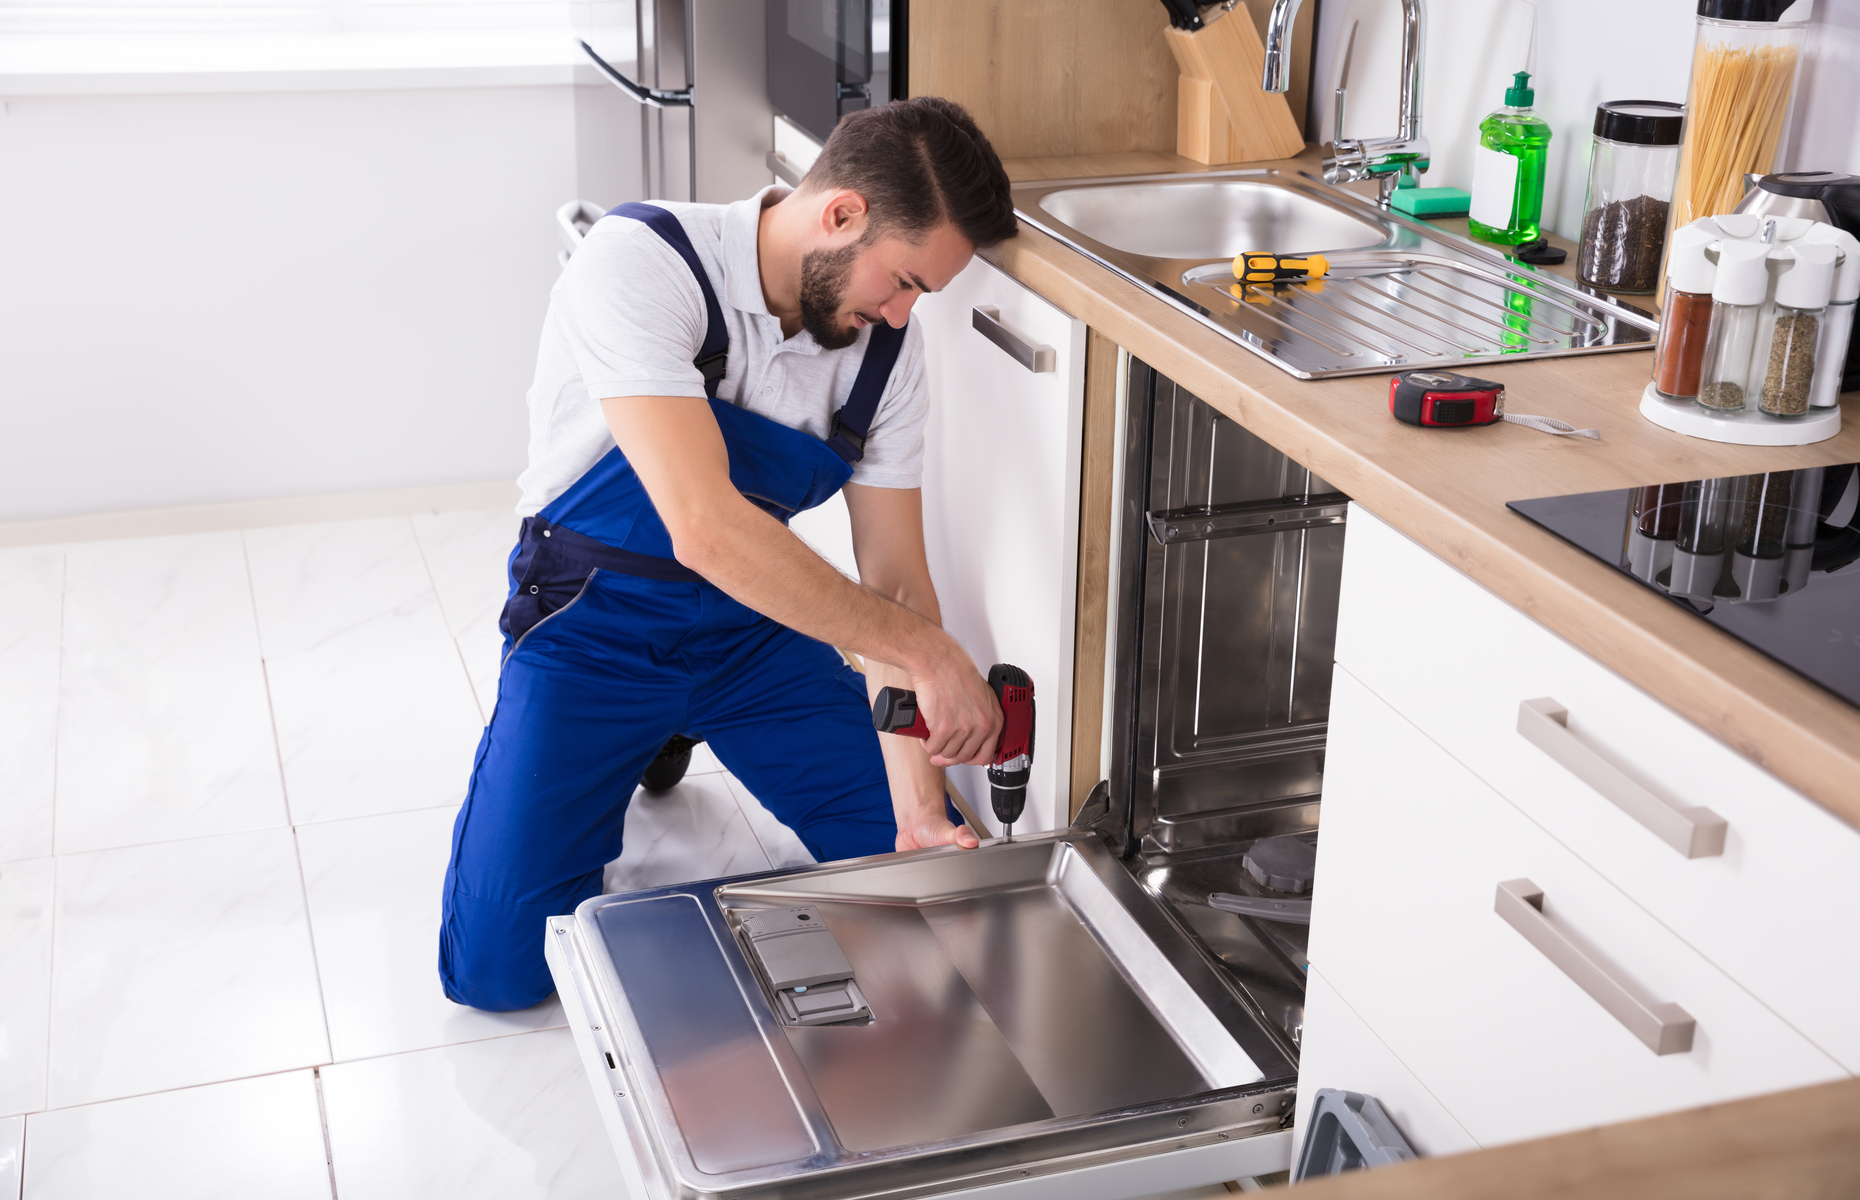 Strict guidelines need to be followed when it comes to installing a dishwasher. Image: Andrey_Popov / Shutterstock